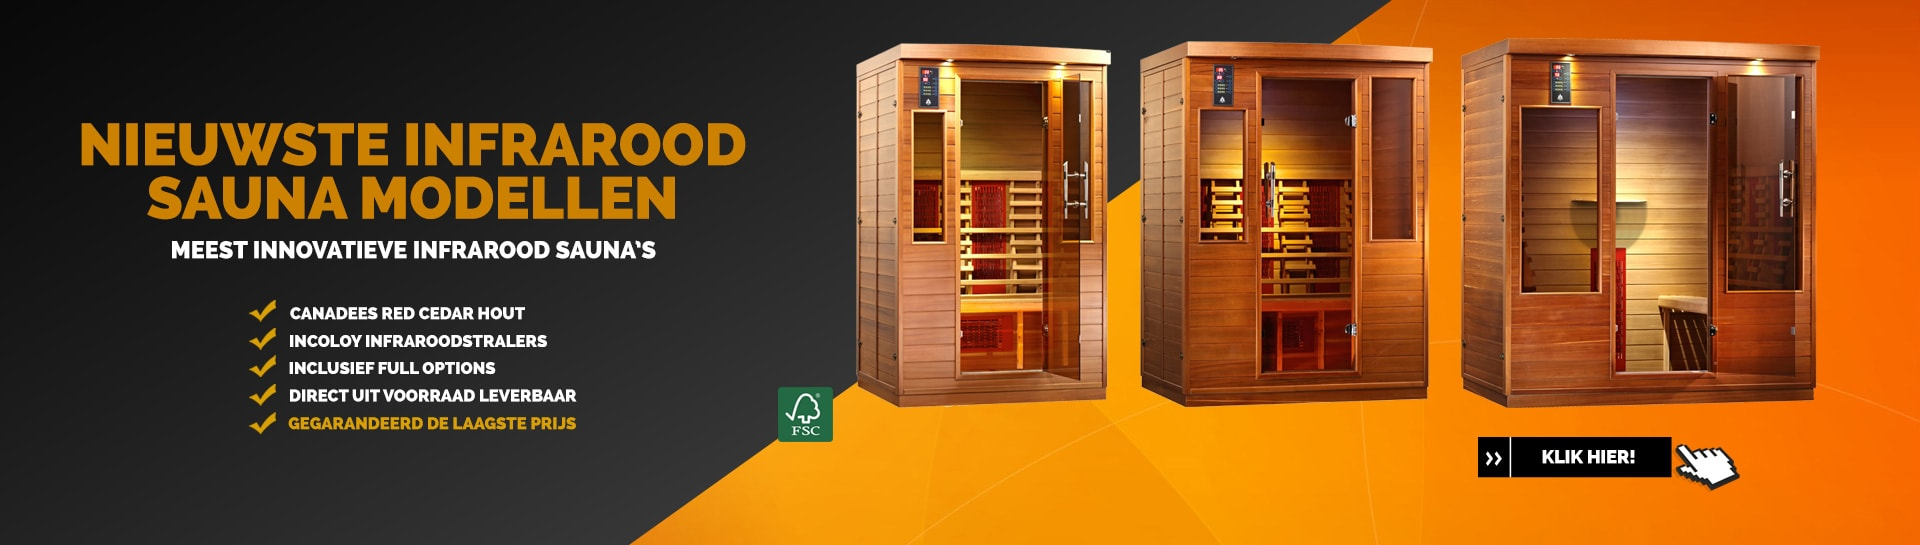 Health & Wellness infrarood sauna's